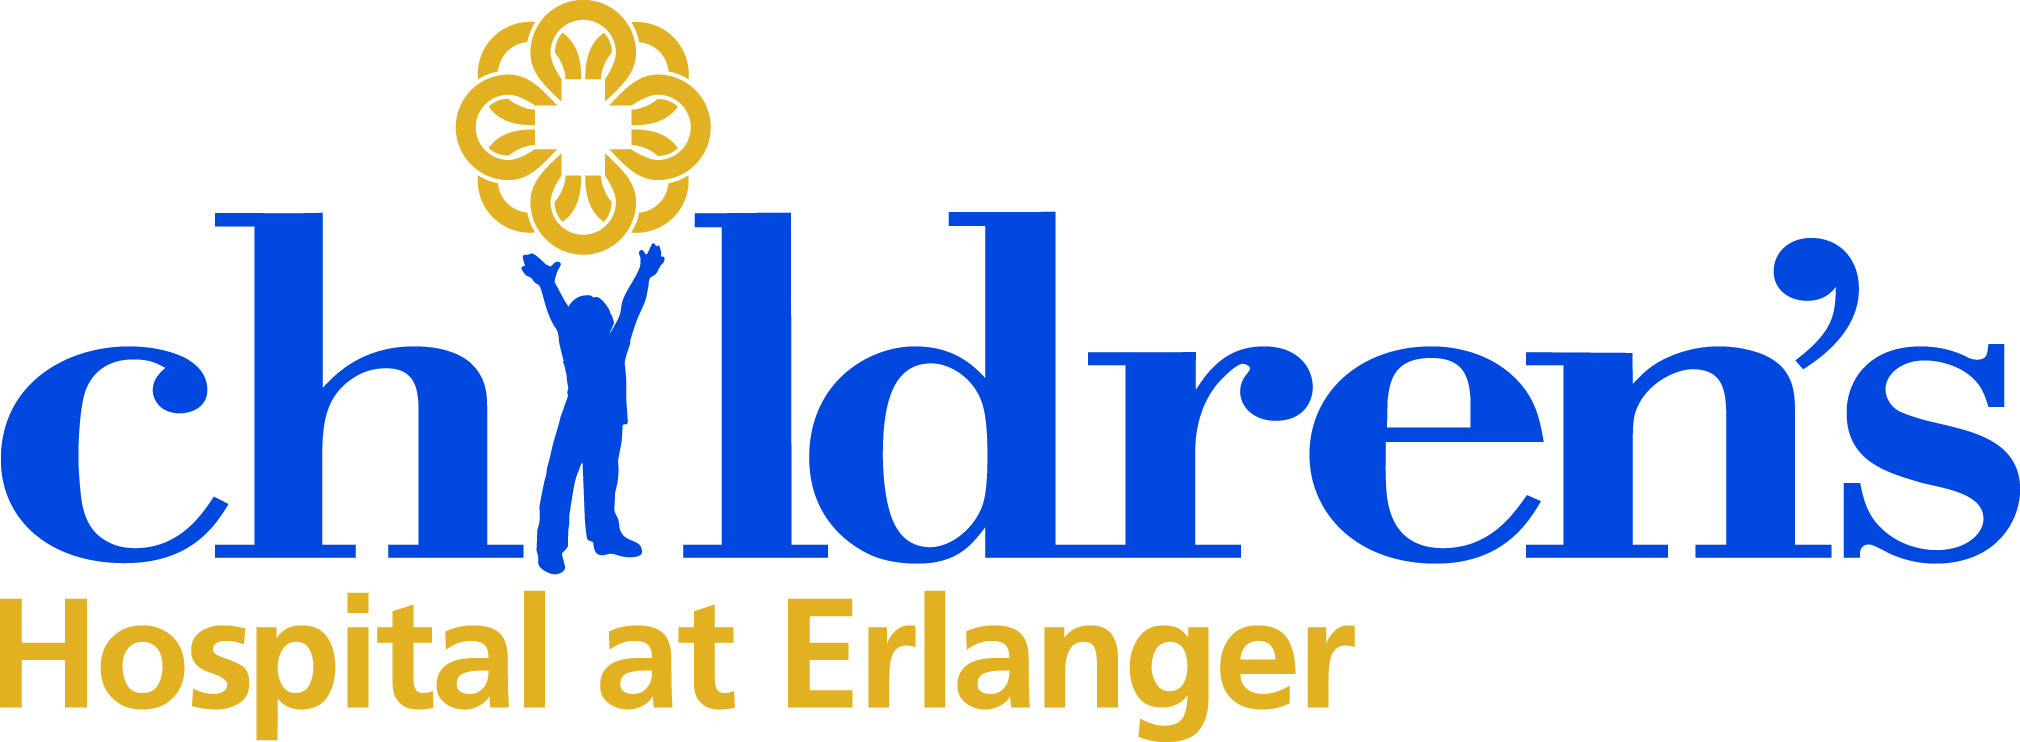 New Children's Hospital at Erlanger logo